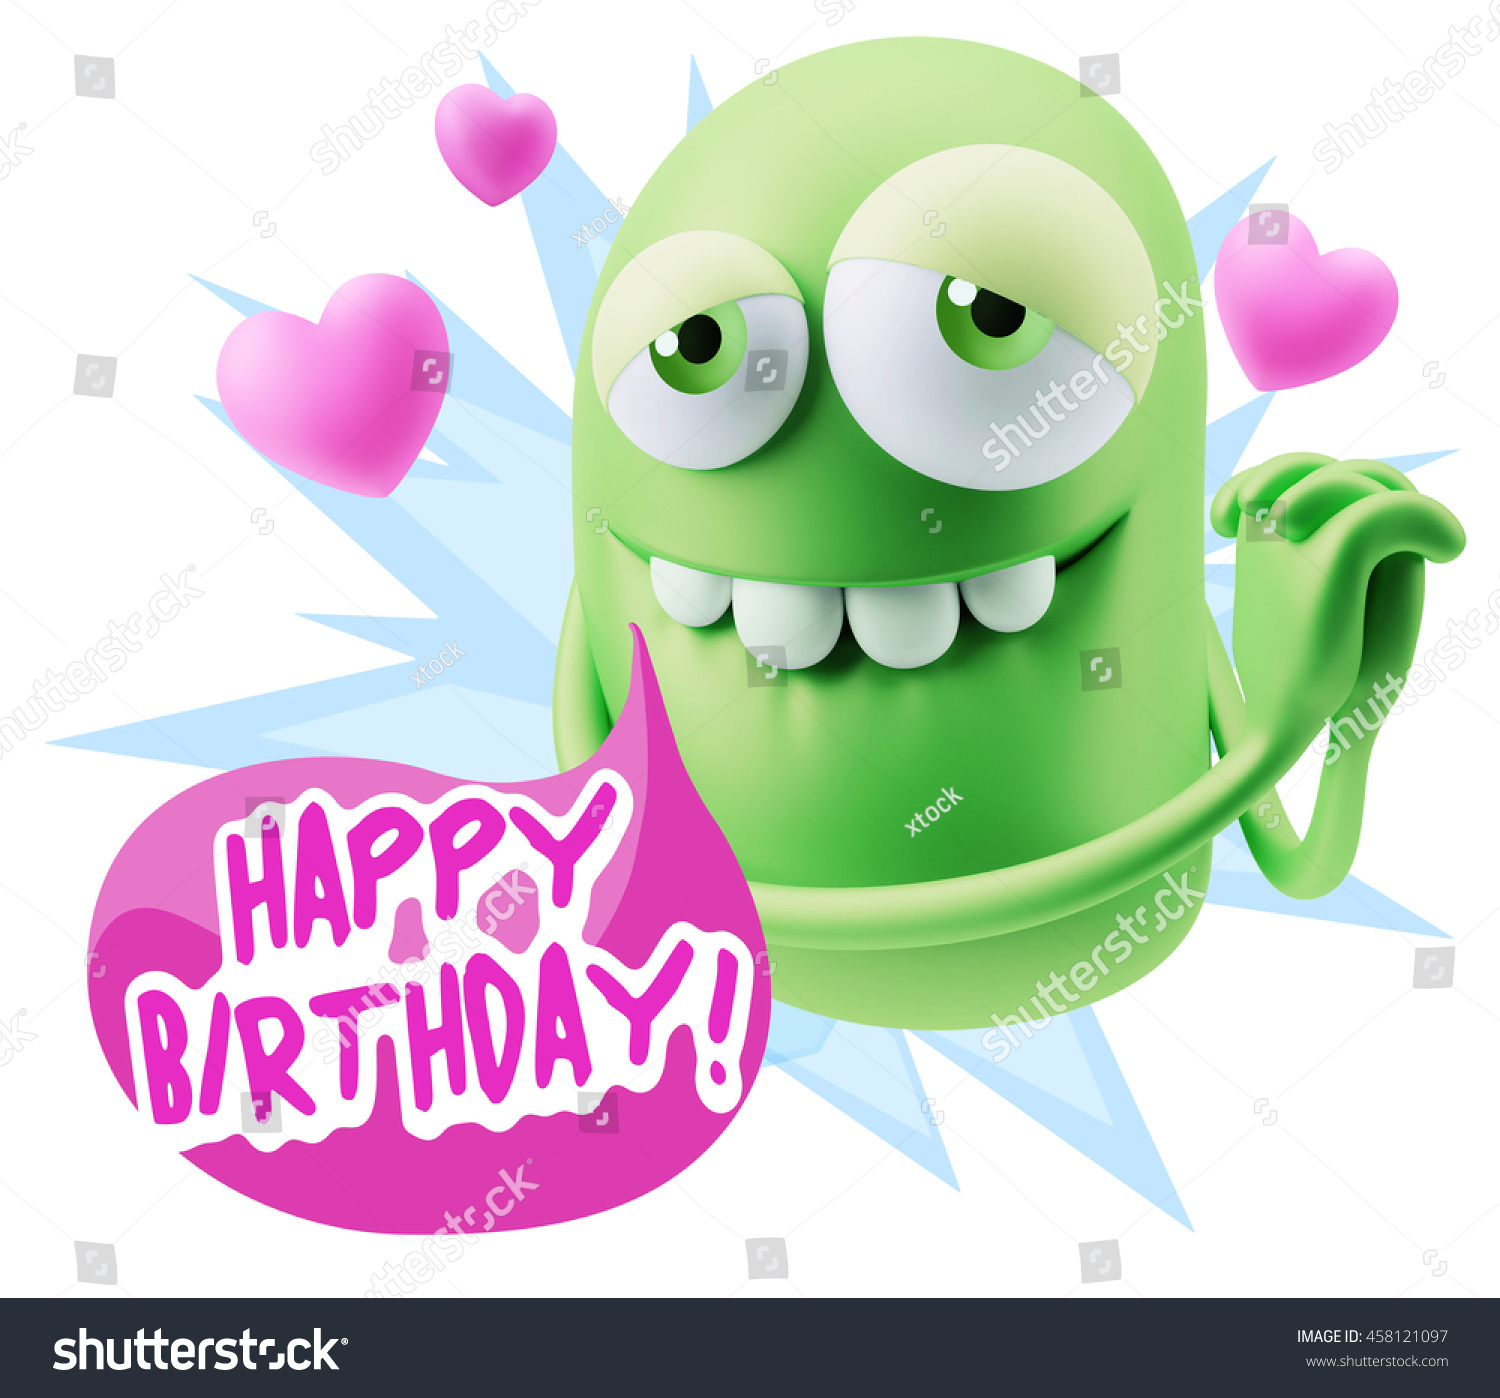 Emoji Saying Happy Birthday With Colorful Speech Bubble